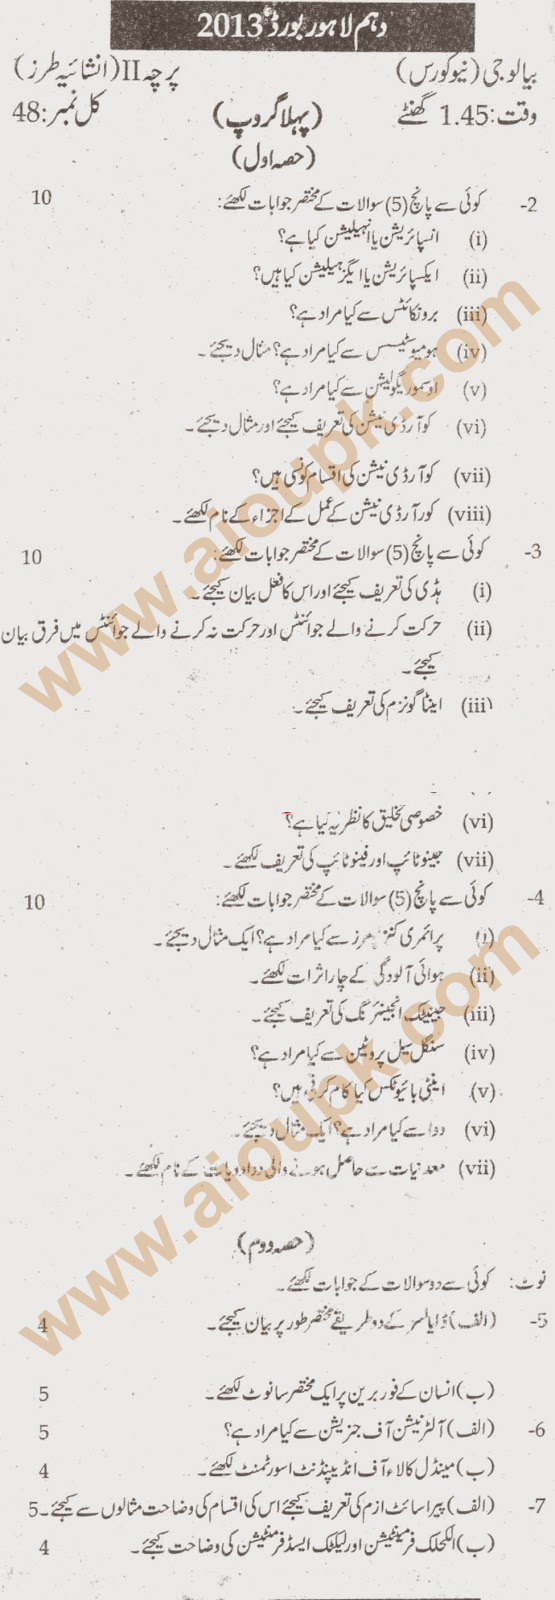 intermediate previous papers punjab boards 10th model papers 2018 pseb matric sample question papers 2018 punjab school education board sample papers previous question papers to punjab.